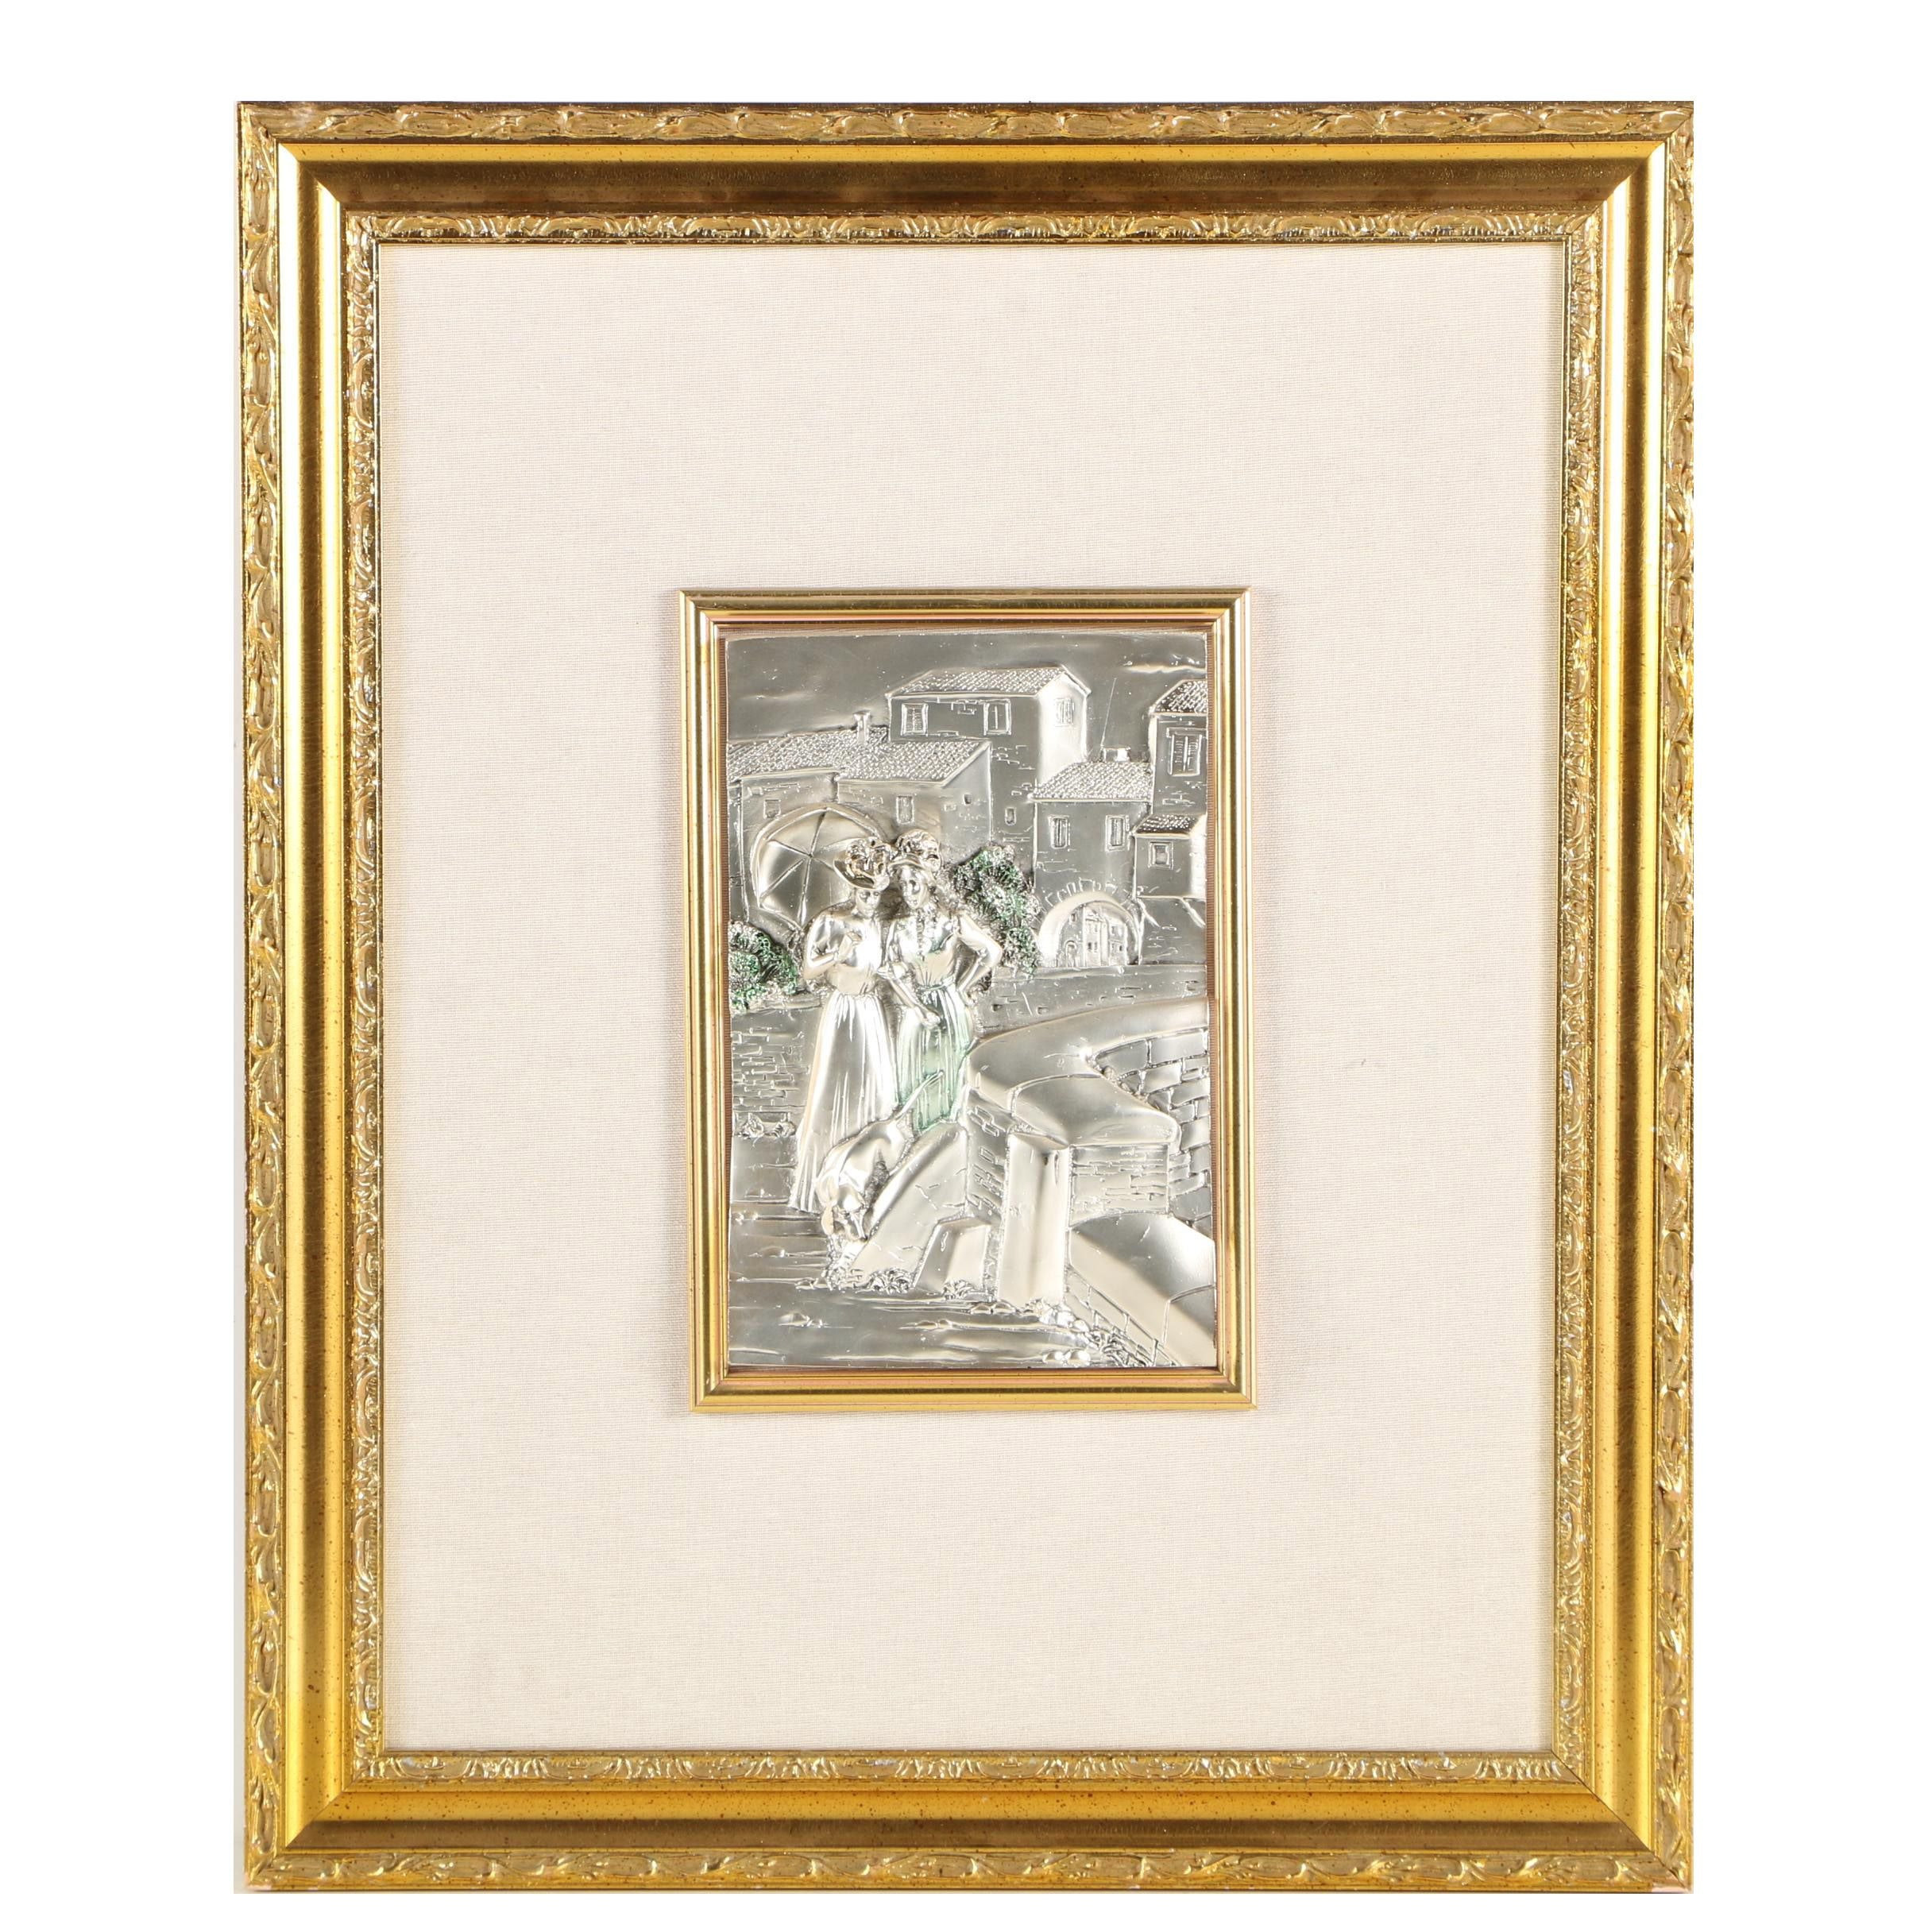 Silver Tone Resin Relief Wall Hanging of Turn-of-the-Century Scene